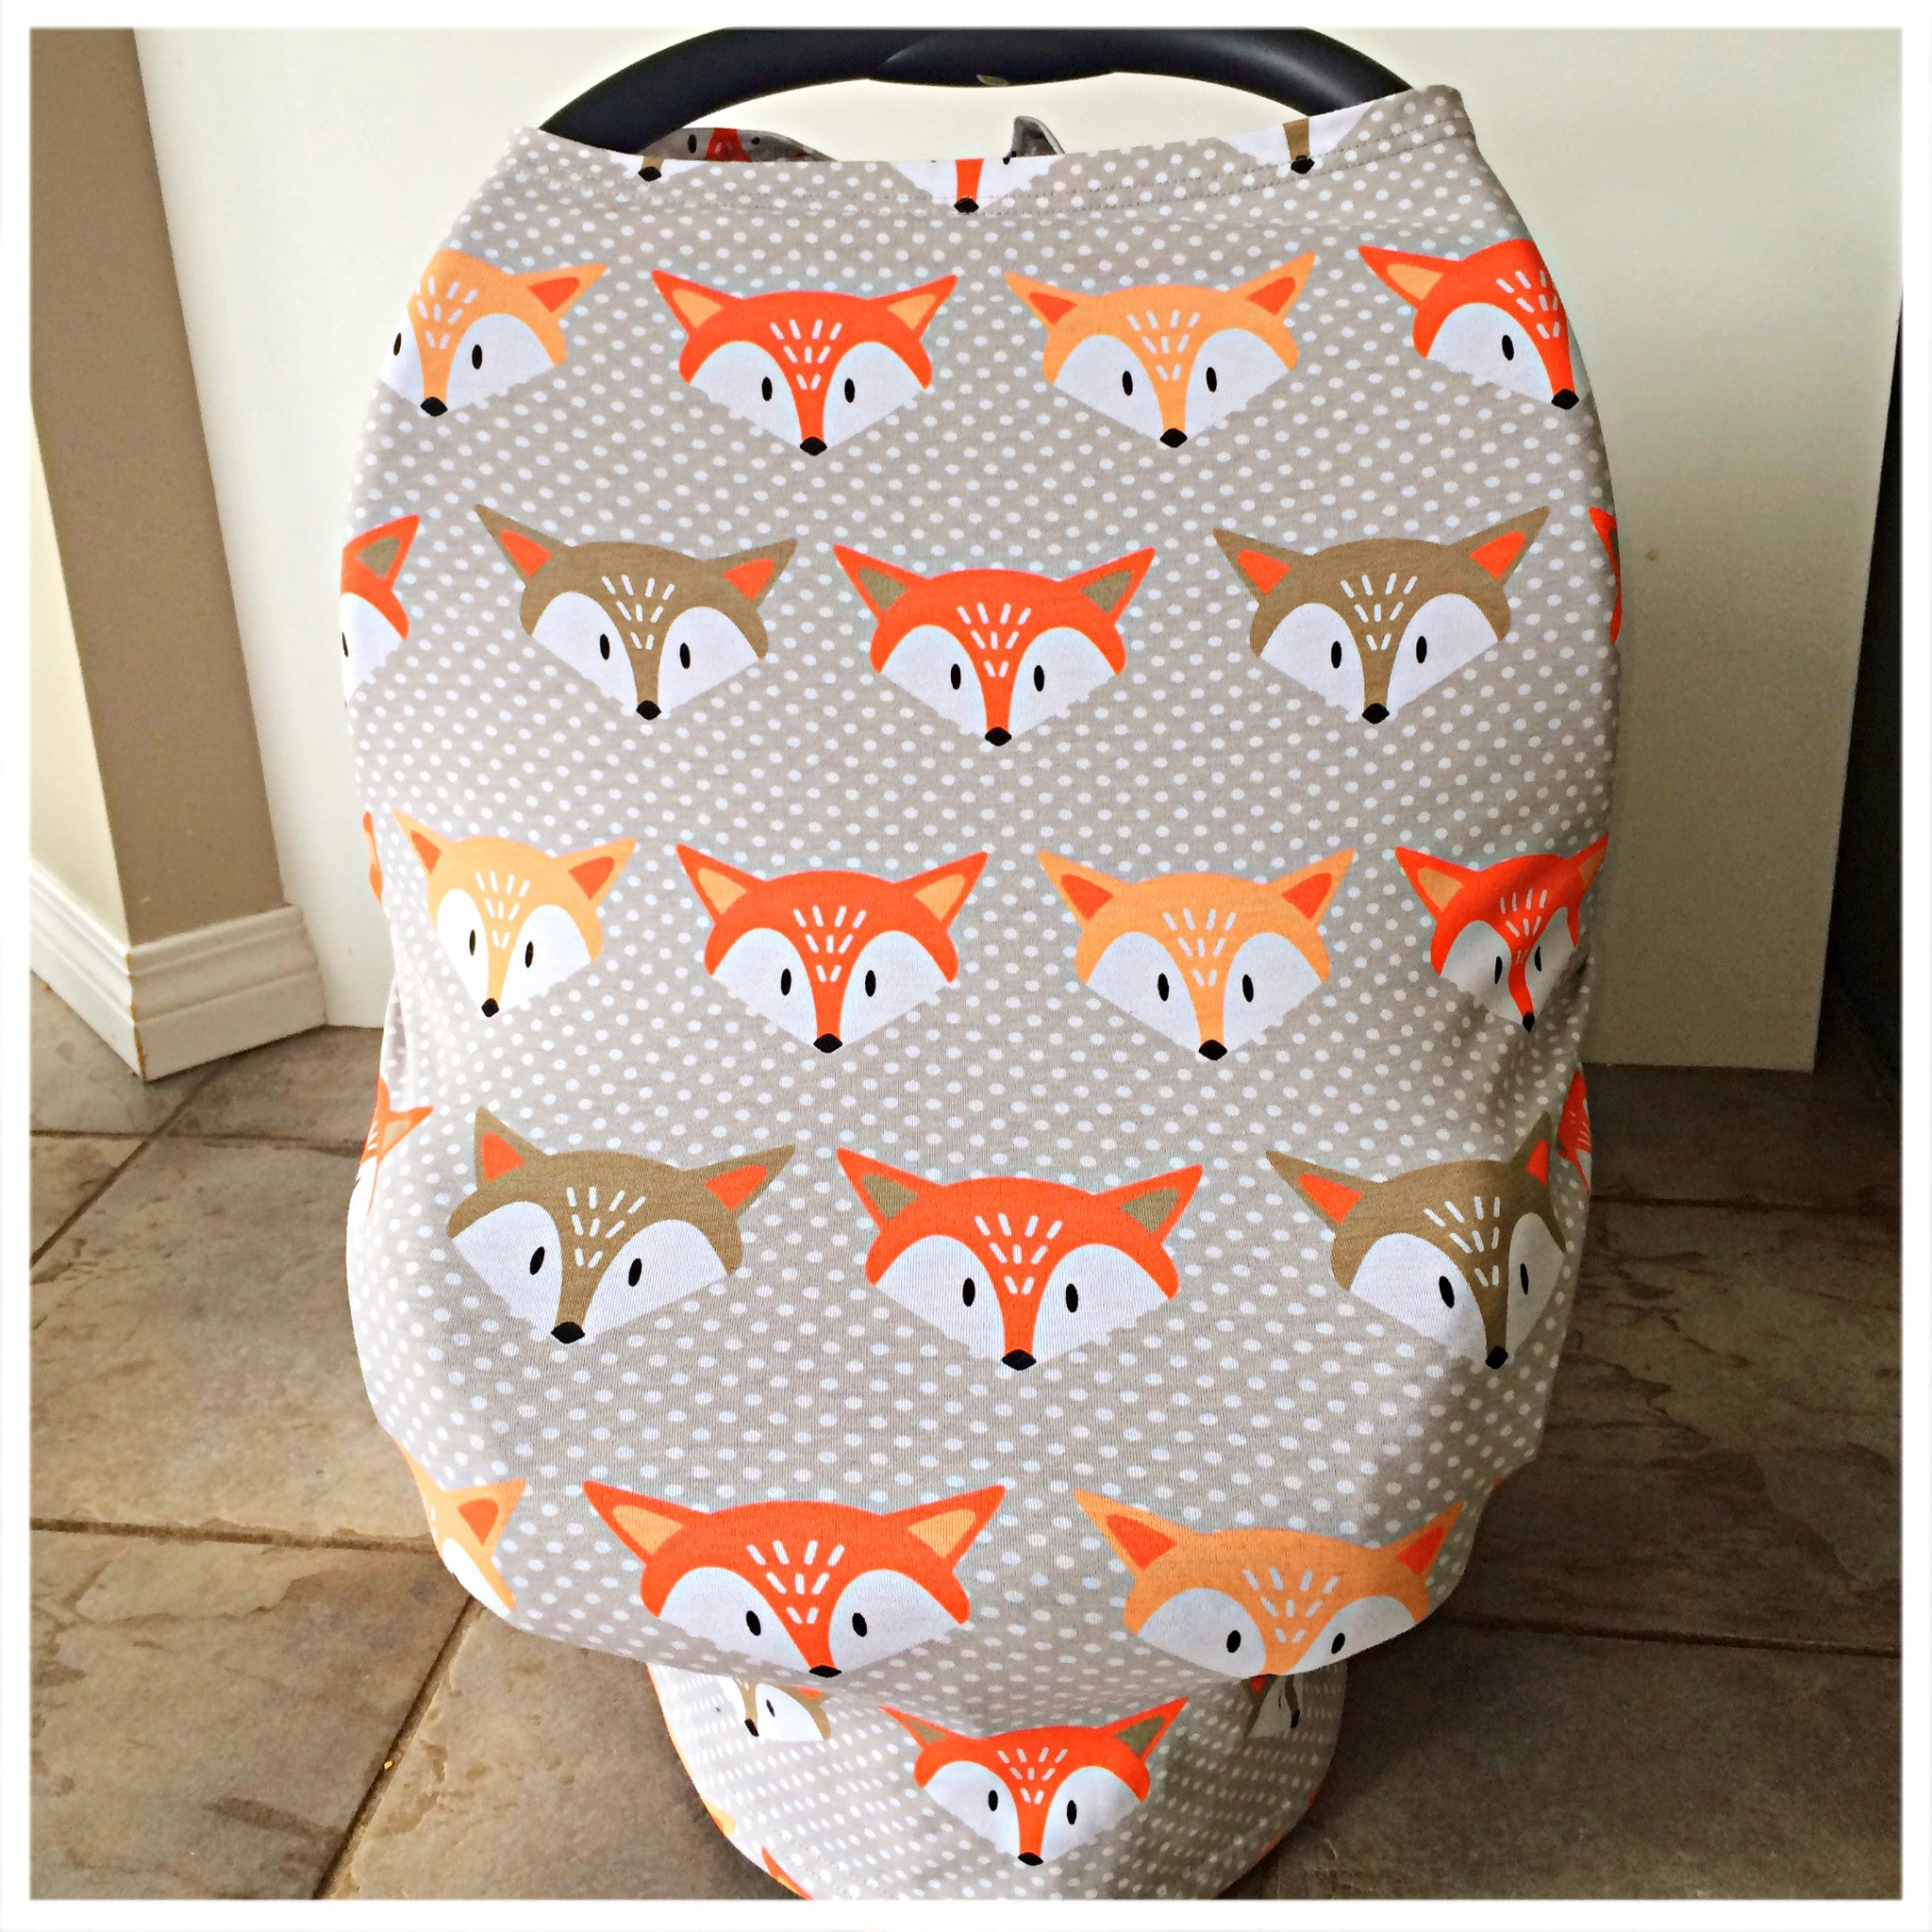 stretchy multi use baby car seat cover, nursing cover, blanket, cart cover. Canadian business.